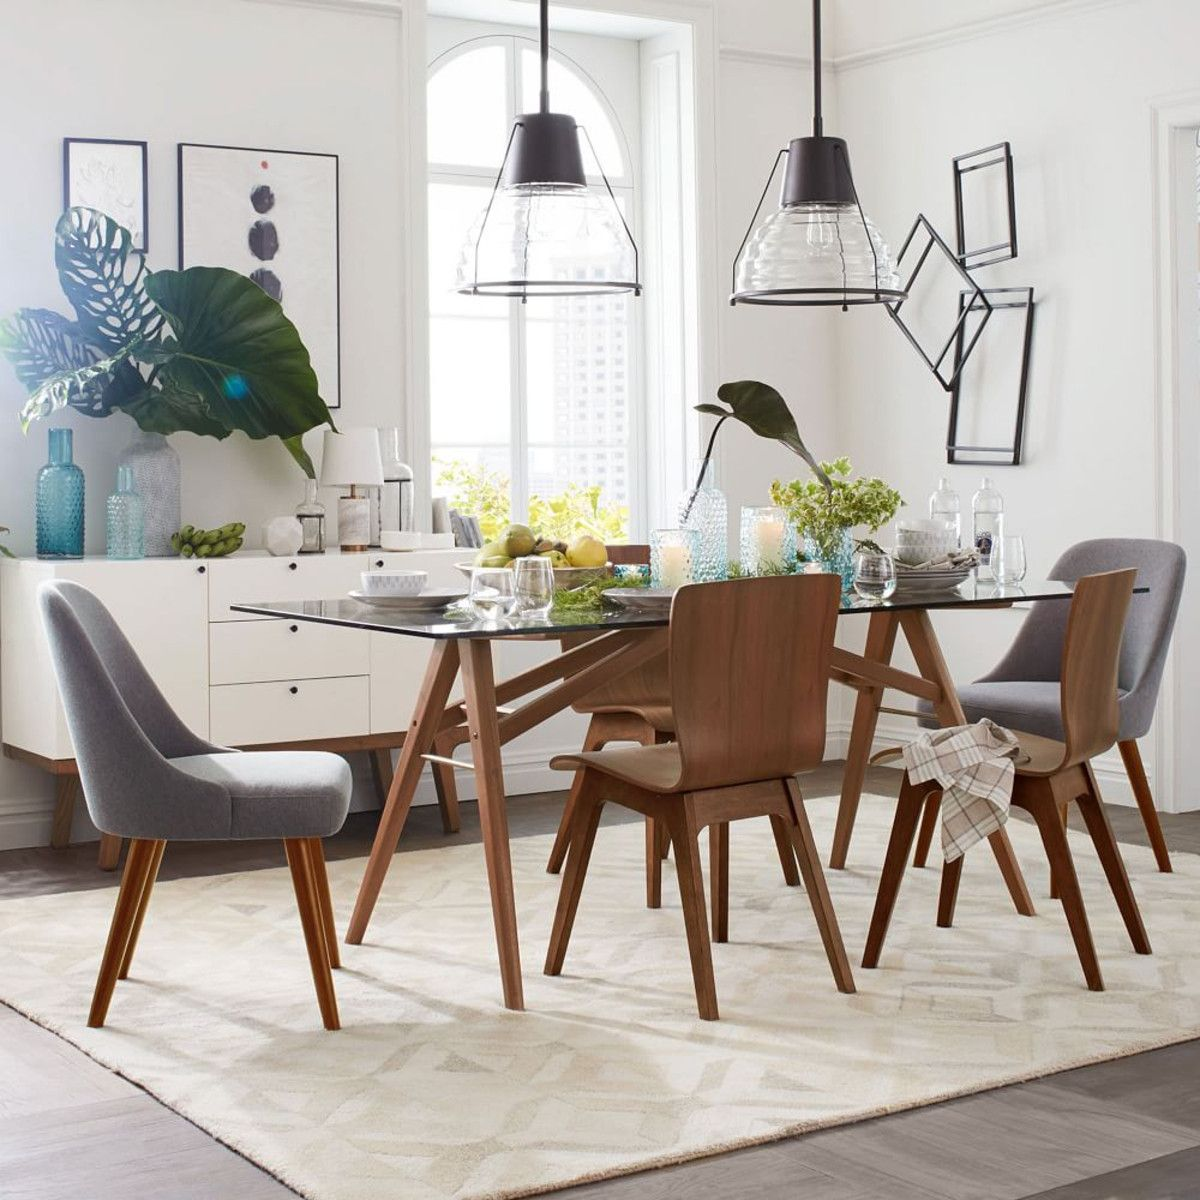 dining room furniture names. Mid Century Dining Chairs Names You Have To Know - Http://www. Room Furniture I